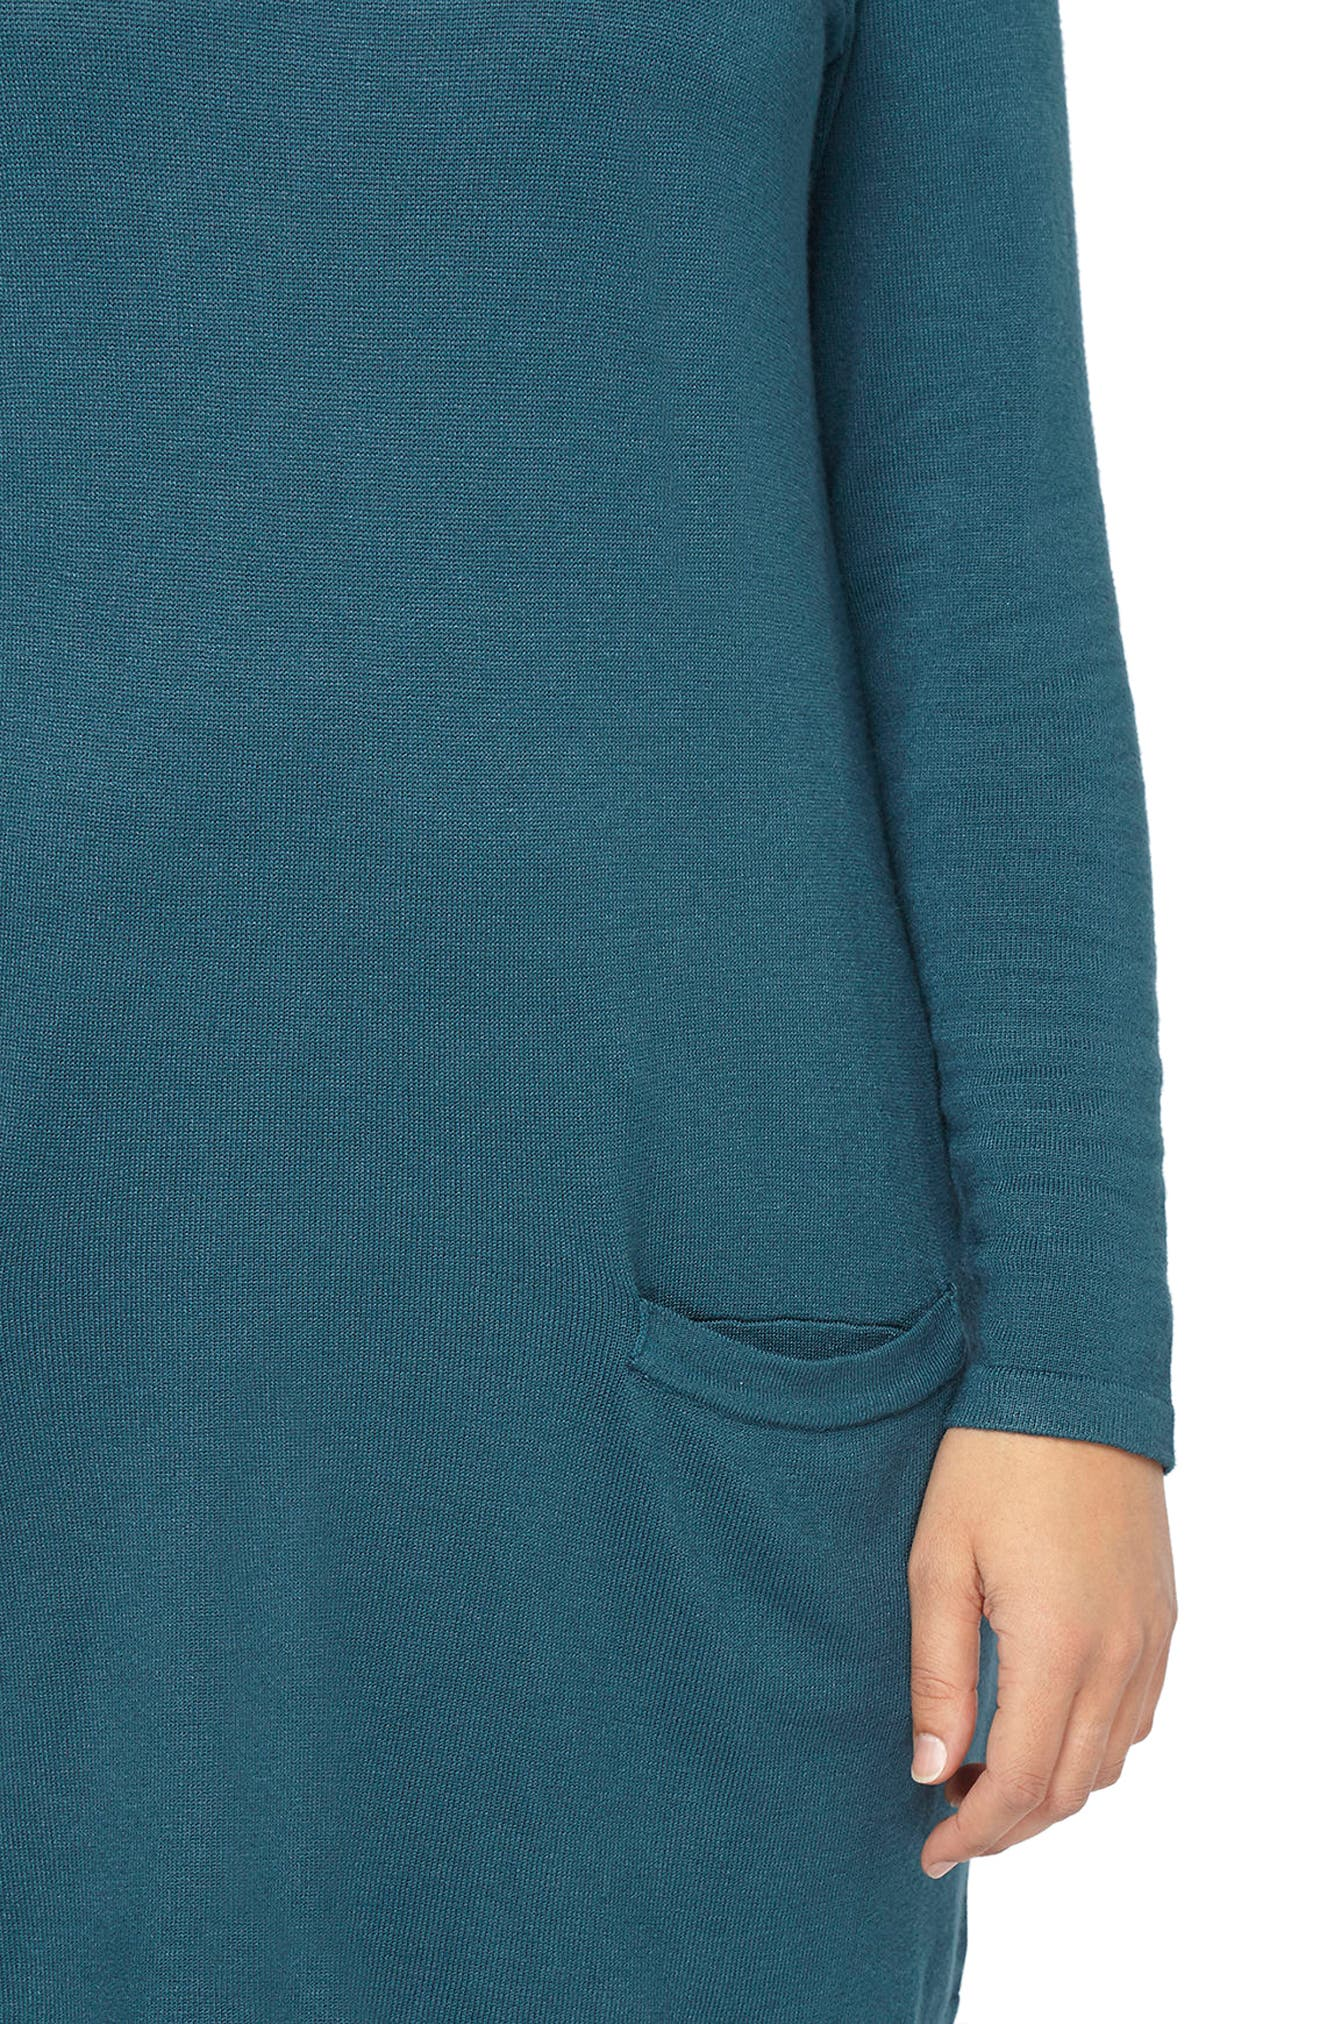 Alternate Image 4  - Evans Front Pocket Textured Tunic Sweater (Plus Size)